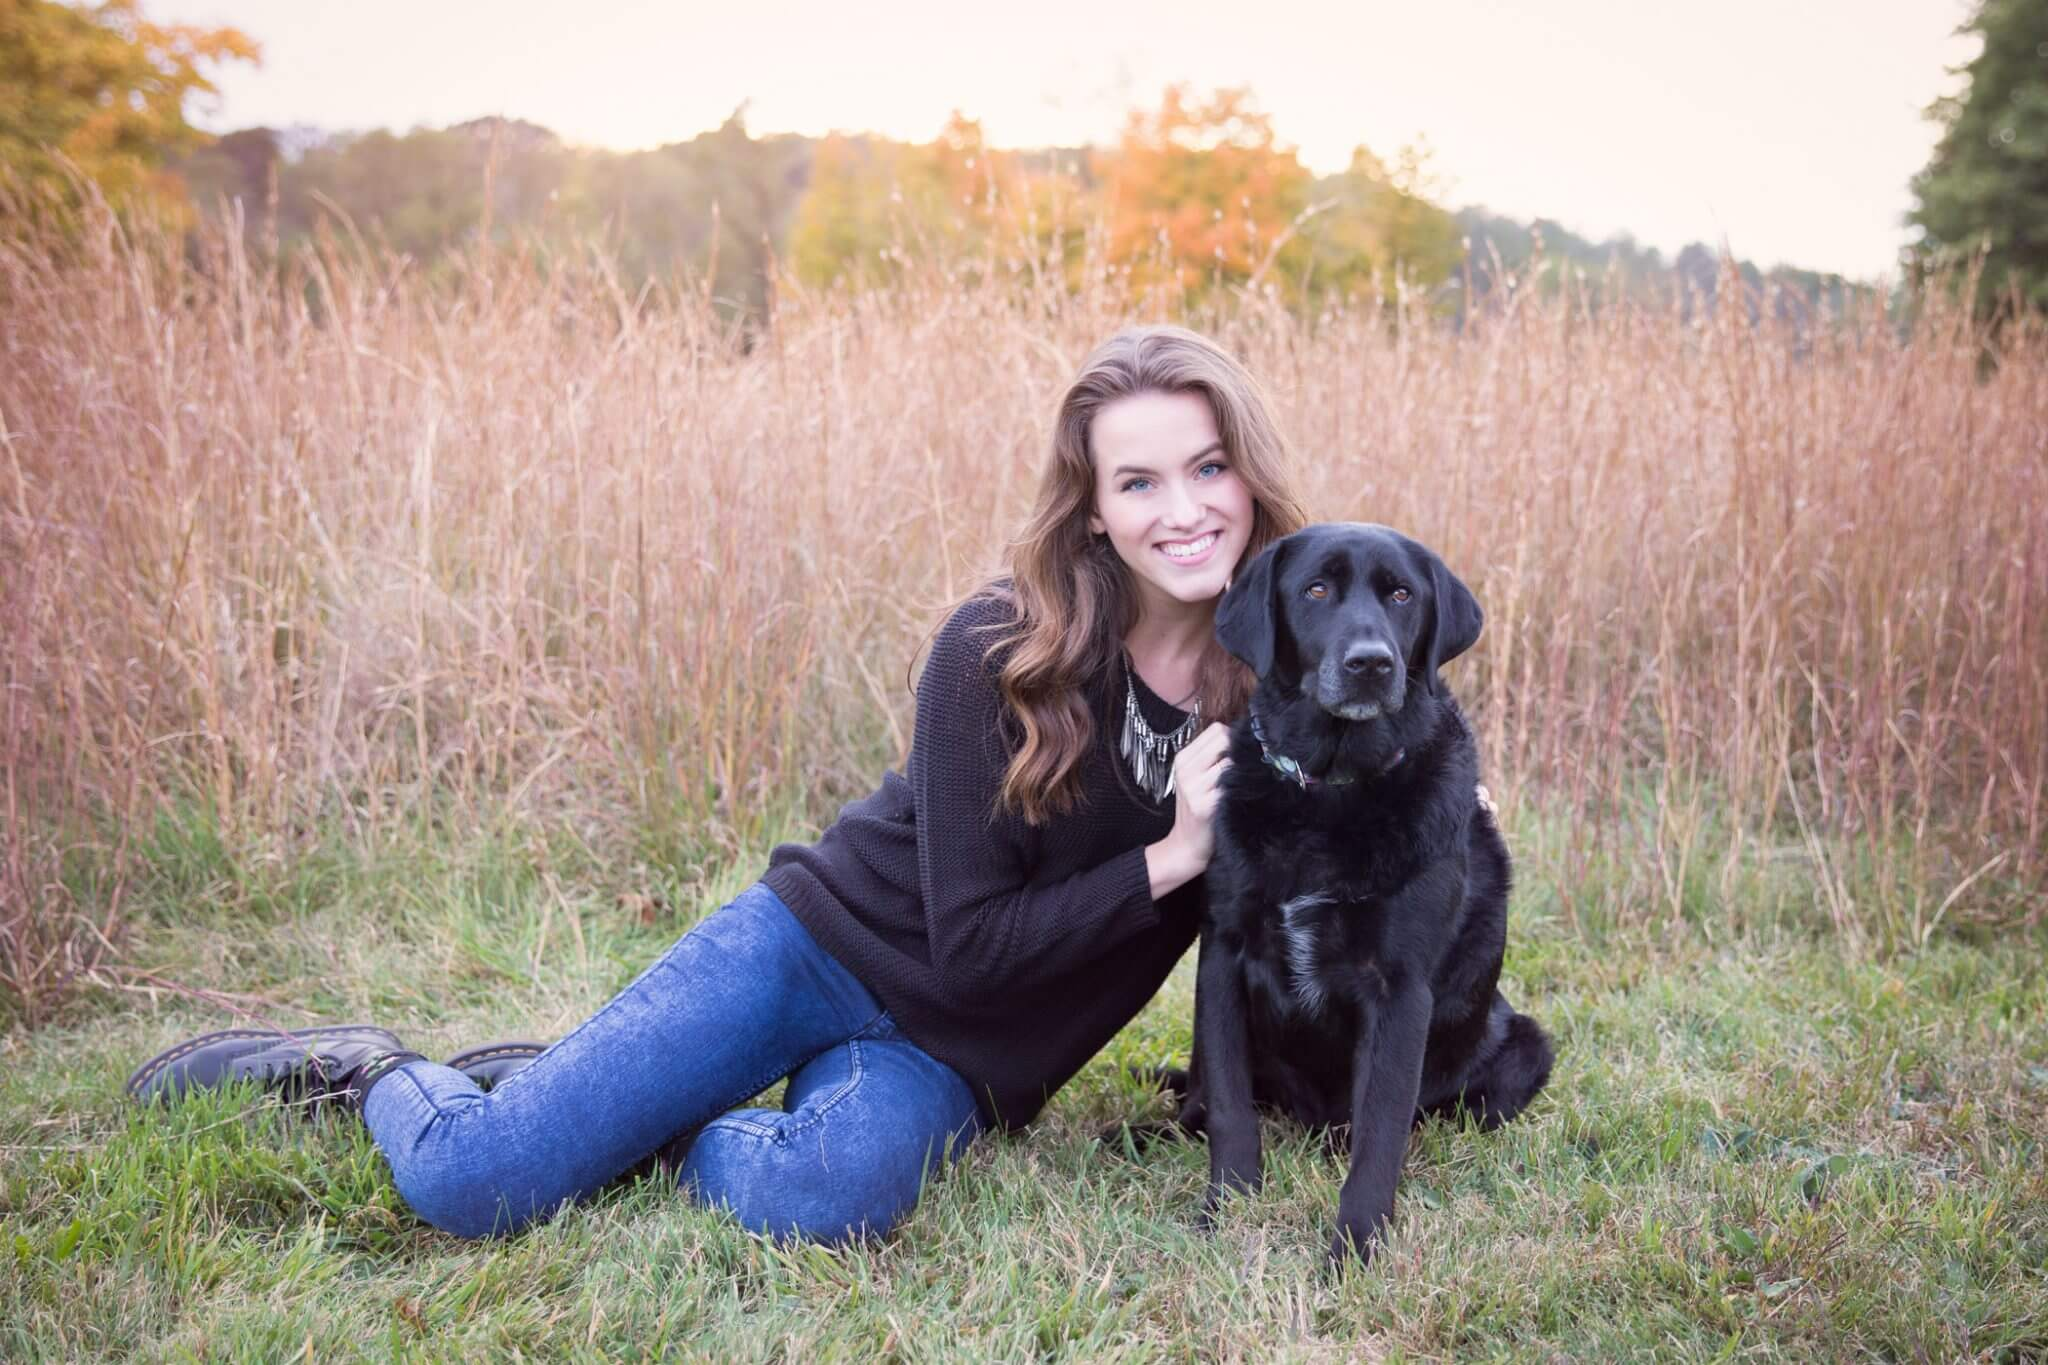 pittsburgh senior portrait in field with black lab dog